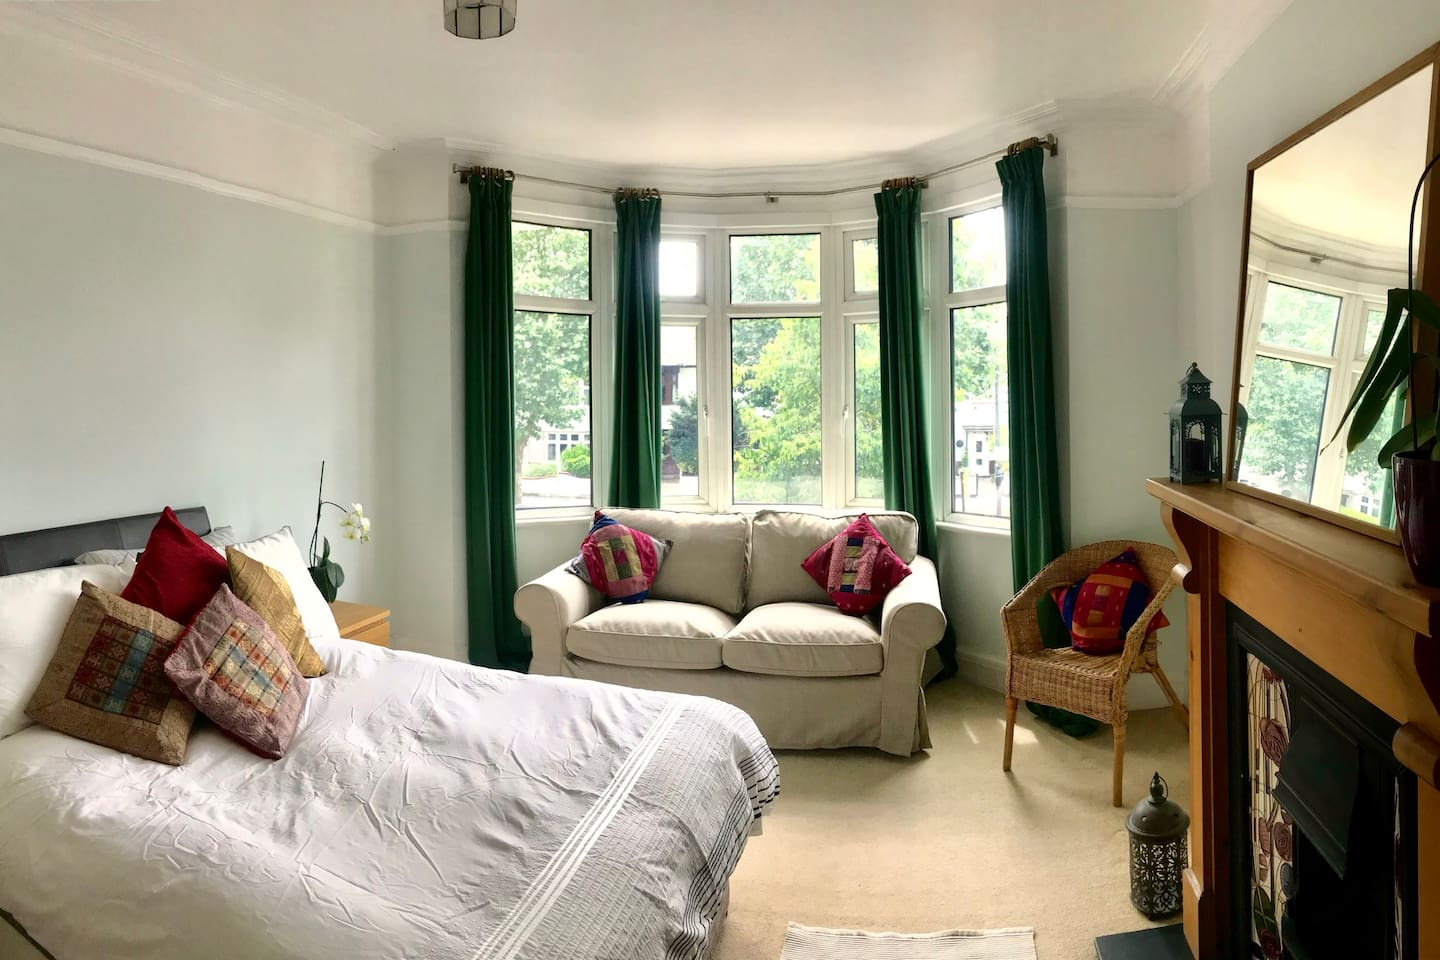 Spacious, light double bedroom with bay window and fireplace